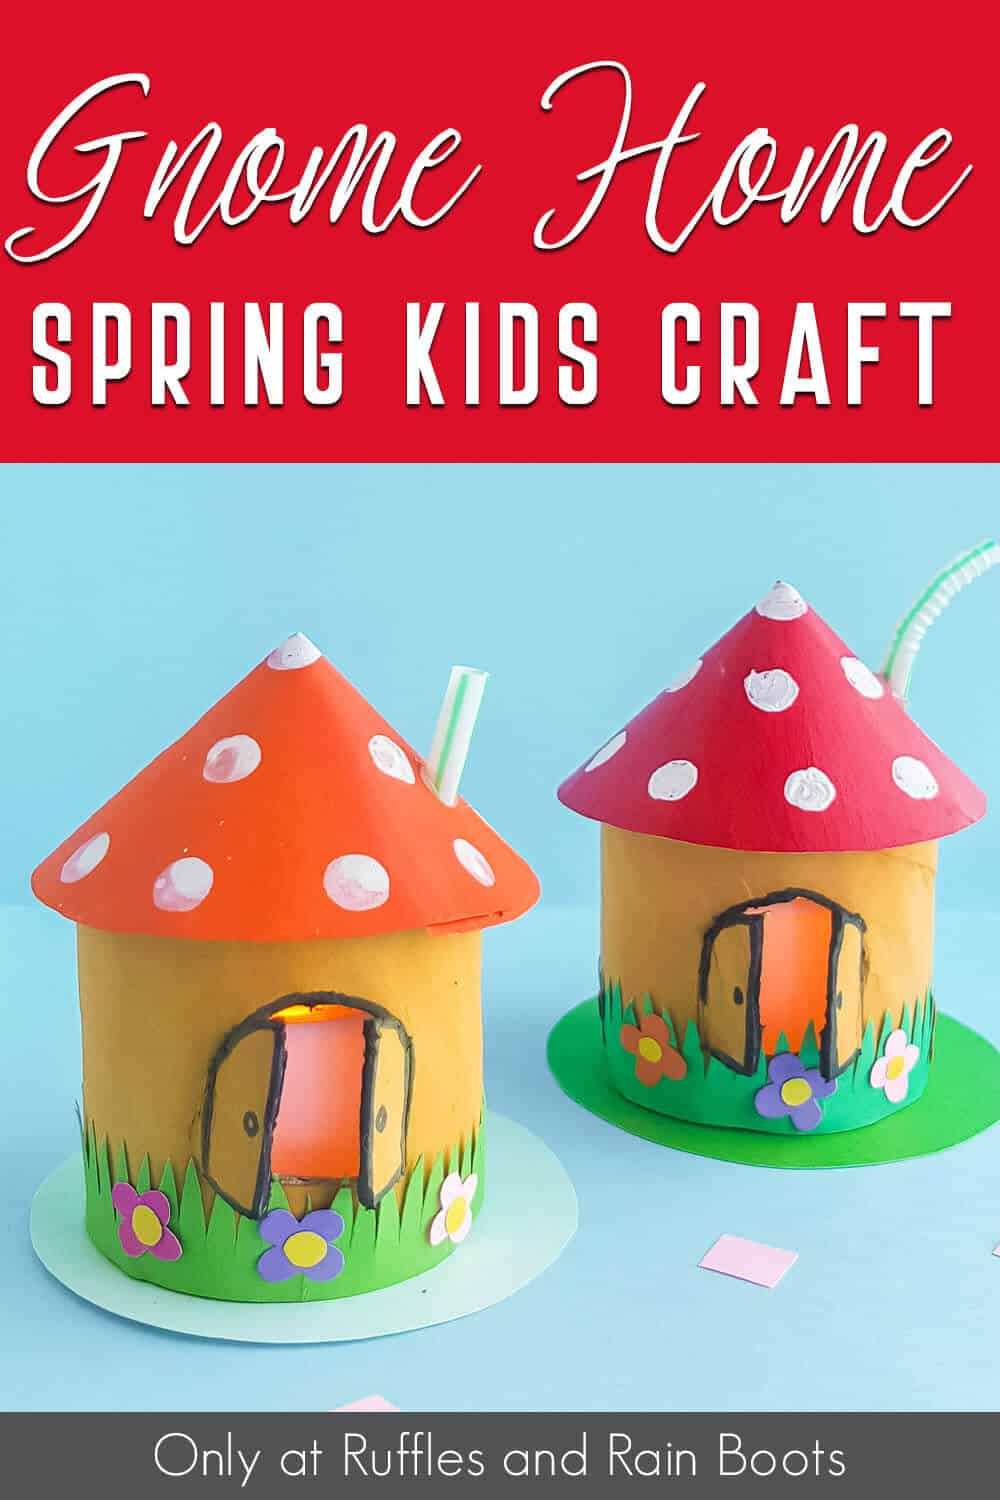 fairy house craft for kids with text which reads gnome home spring kids craft